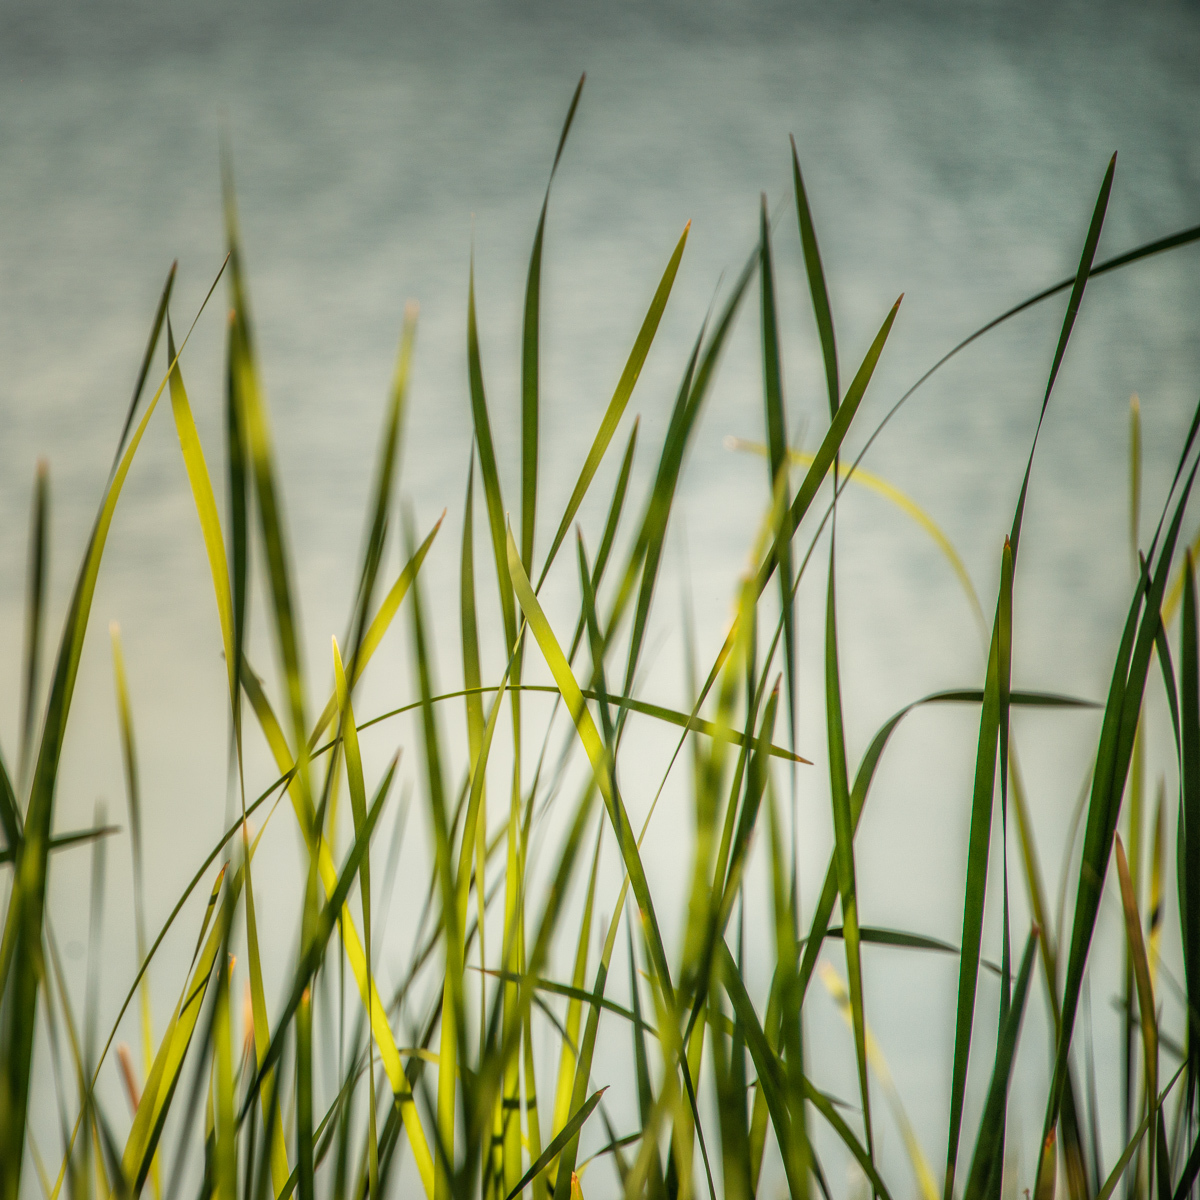 River Grass I (large view)